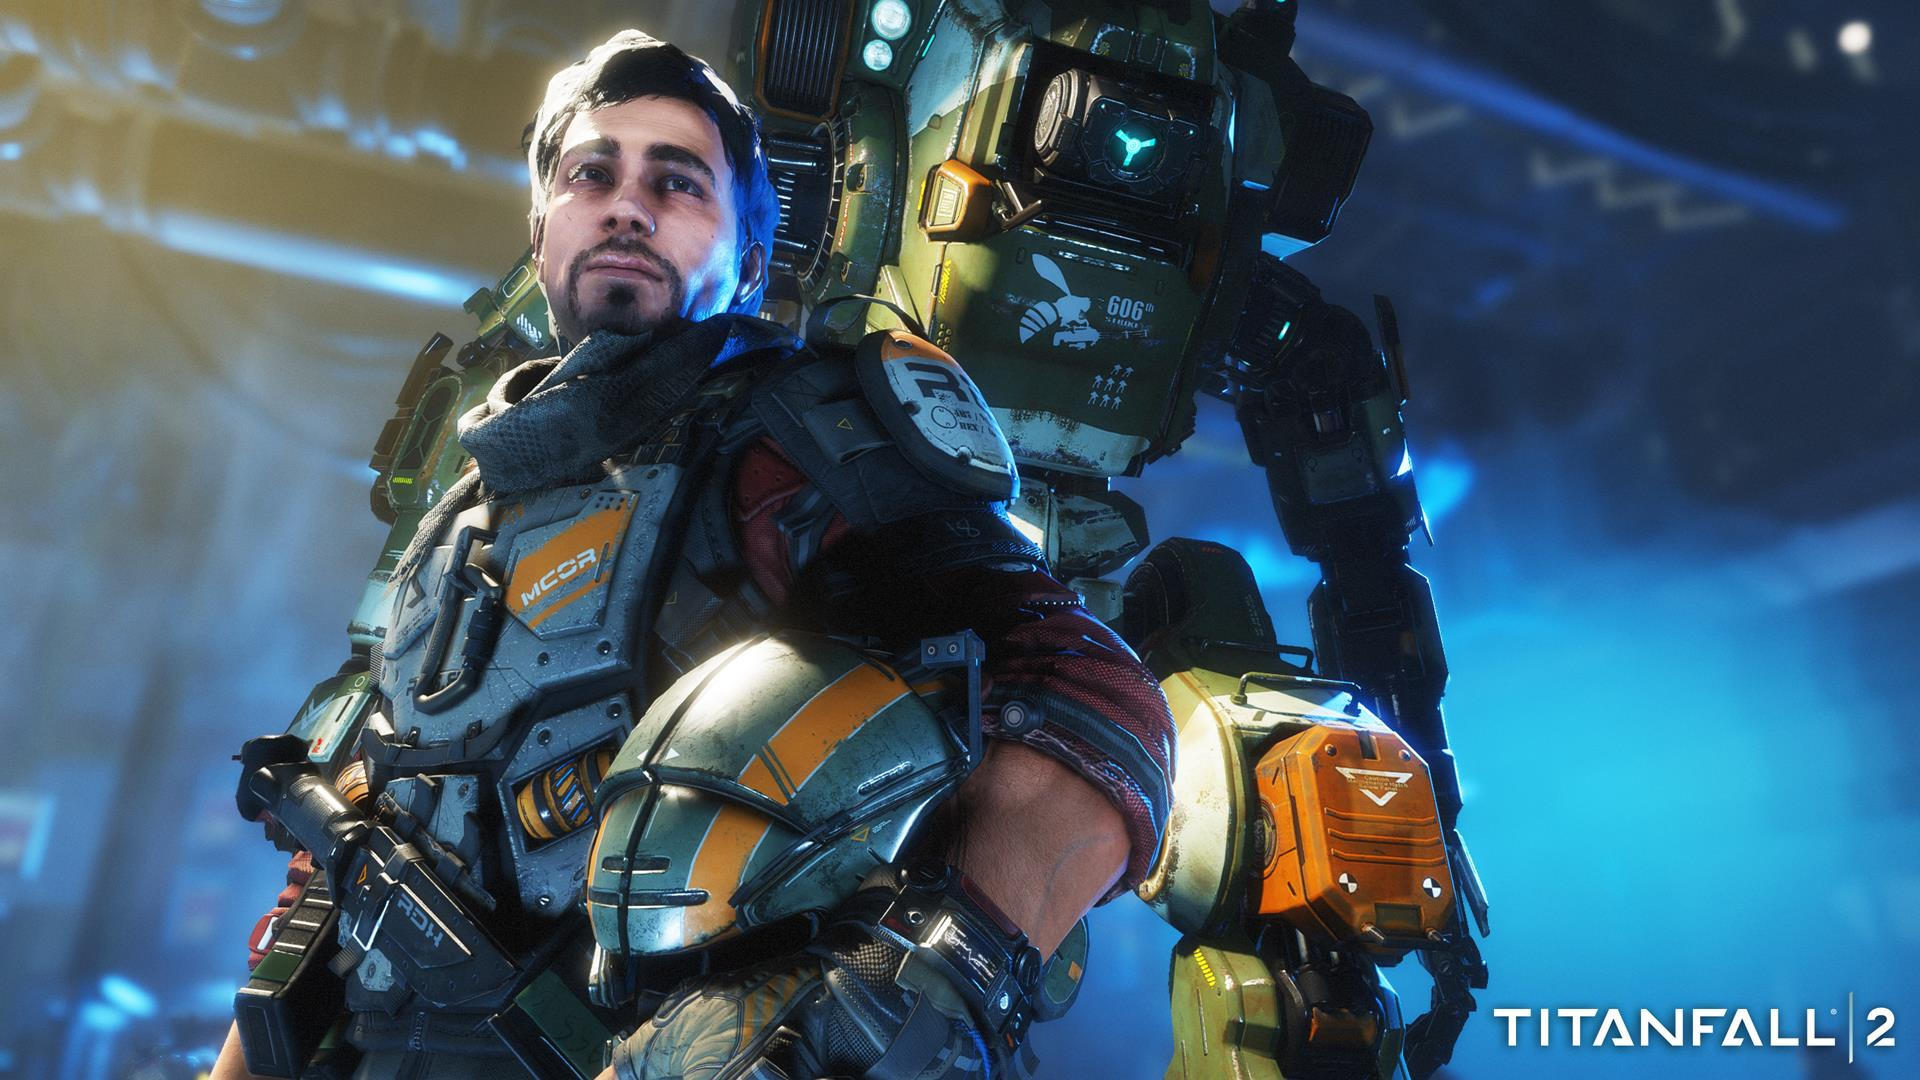 Titanfall 2: Day-One-Patch zum Release ist winzig – Patch-Size